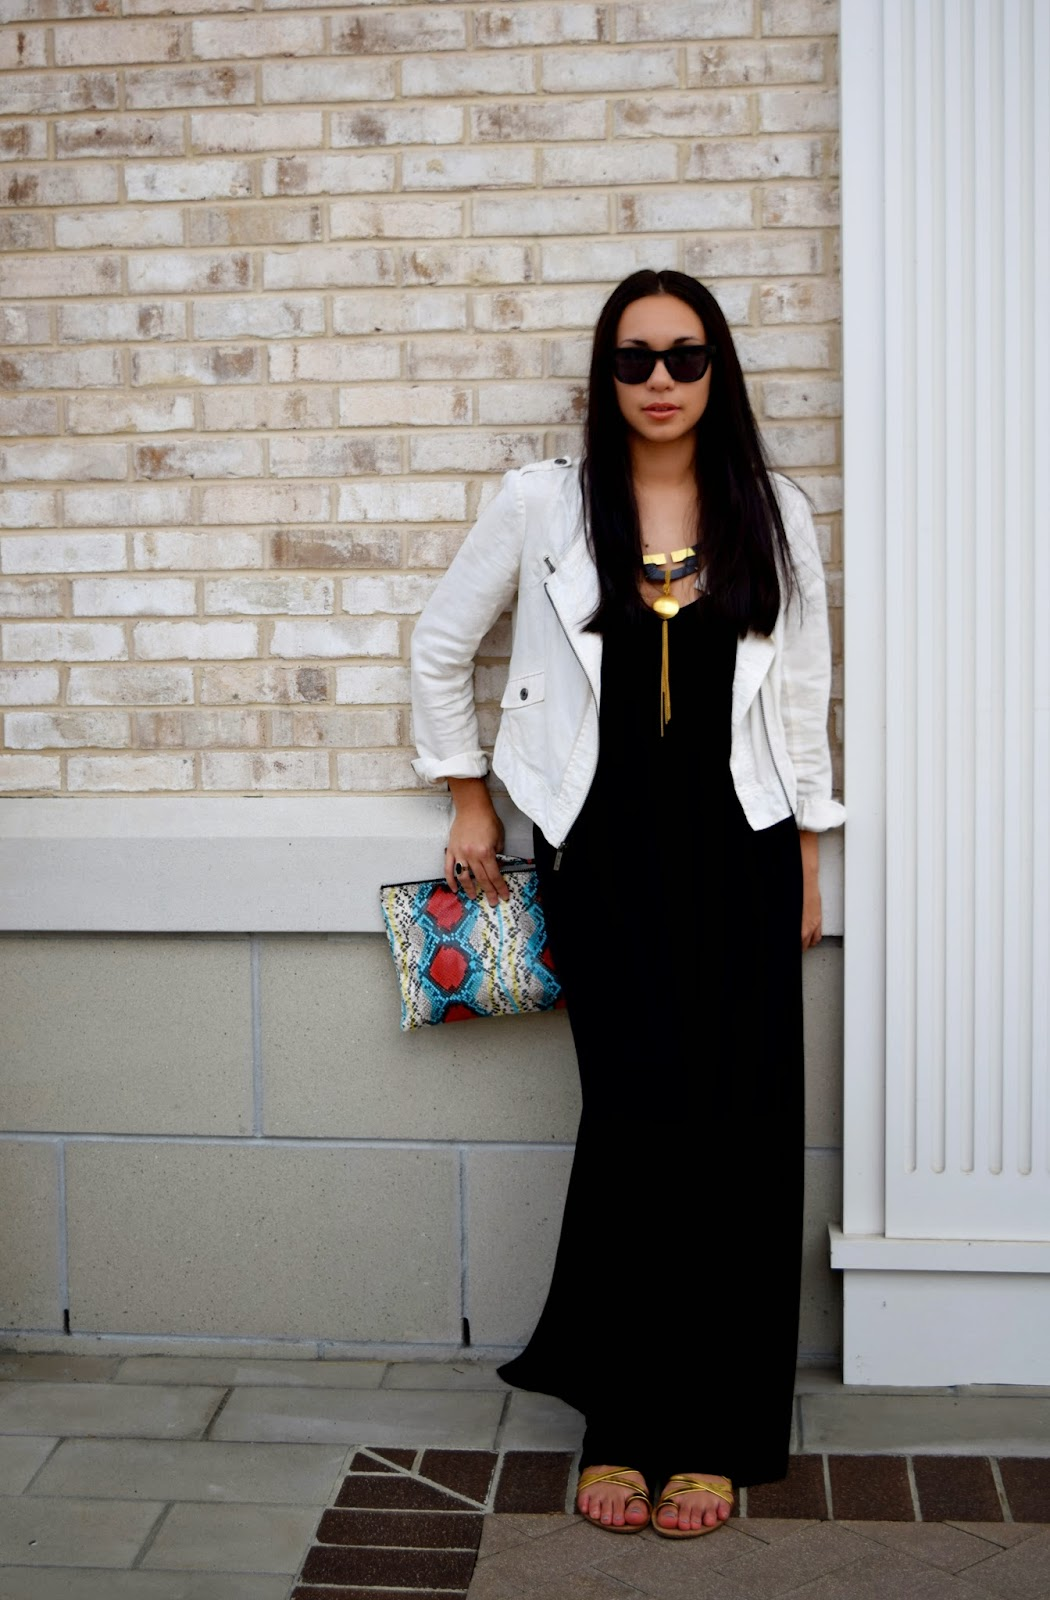 Mel, Chanel, Westward, Leaming, Hyla Dewitt, style, fashion, blogger, Raleigh blogger, Raleigh, maxi, black, dress, moto jacket, gold, black and white, Loeffler Randall